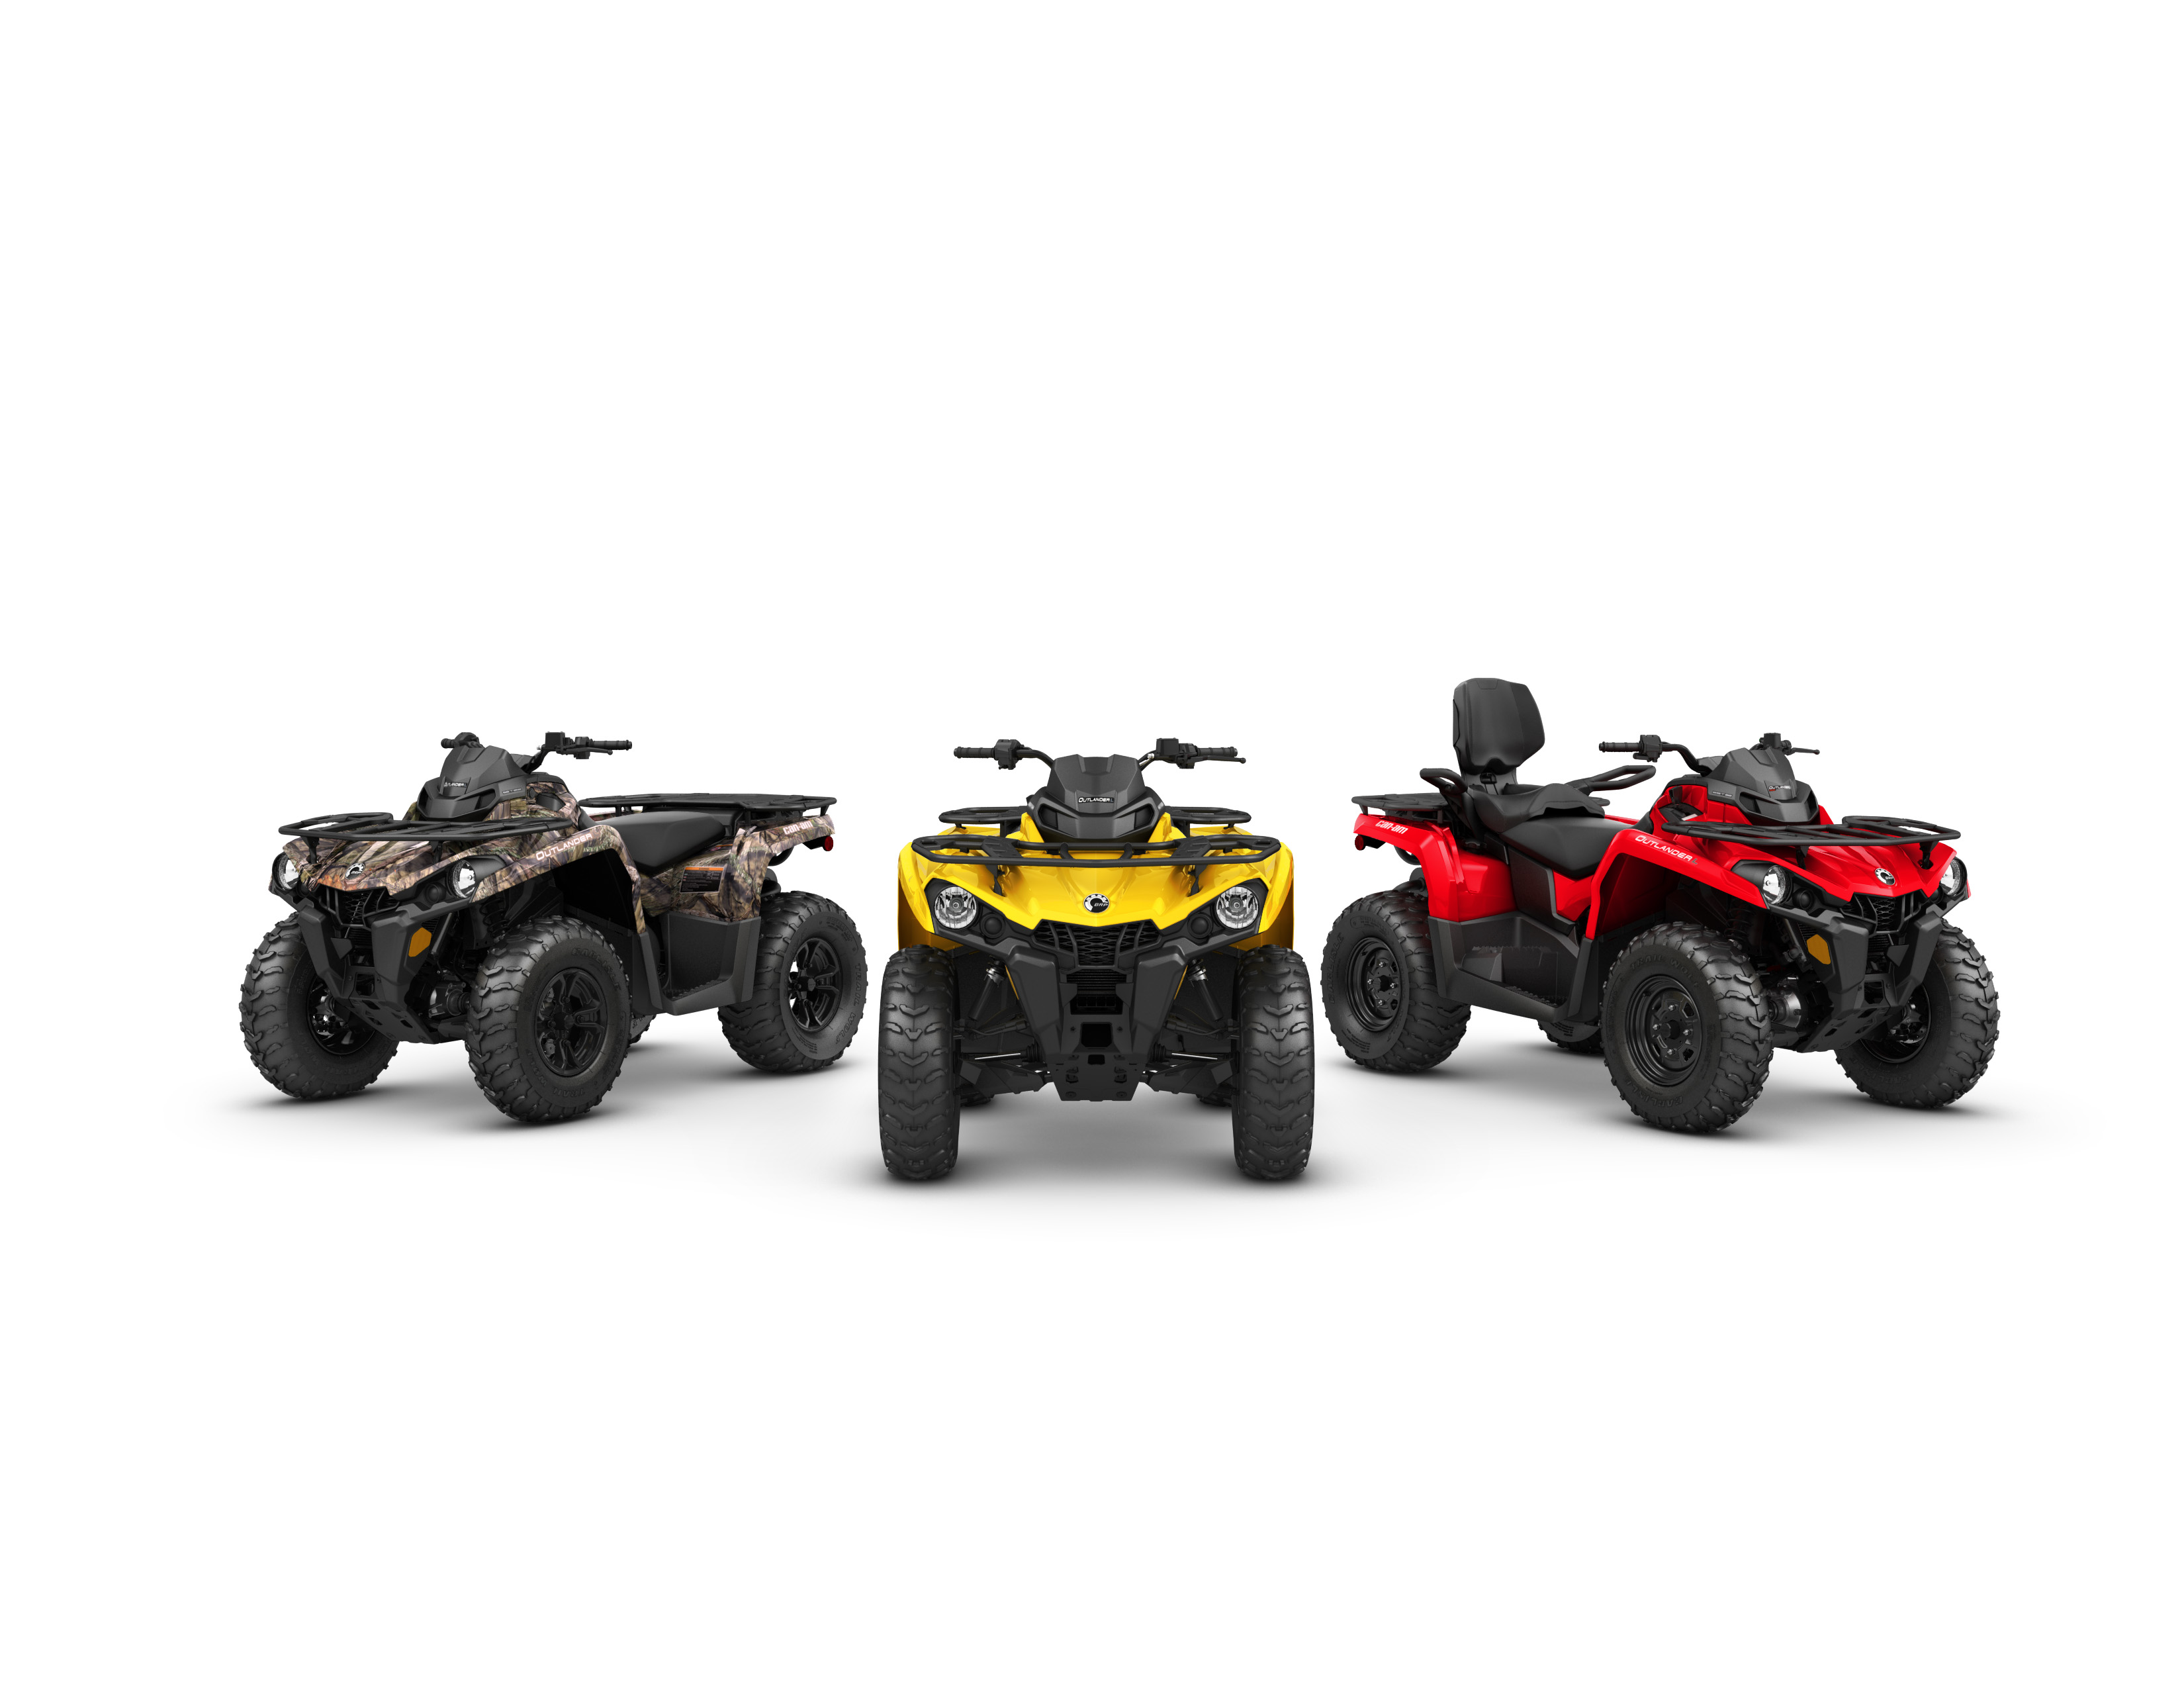 NEW 2016 CAN AM LINEUP JUST RELEASED